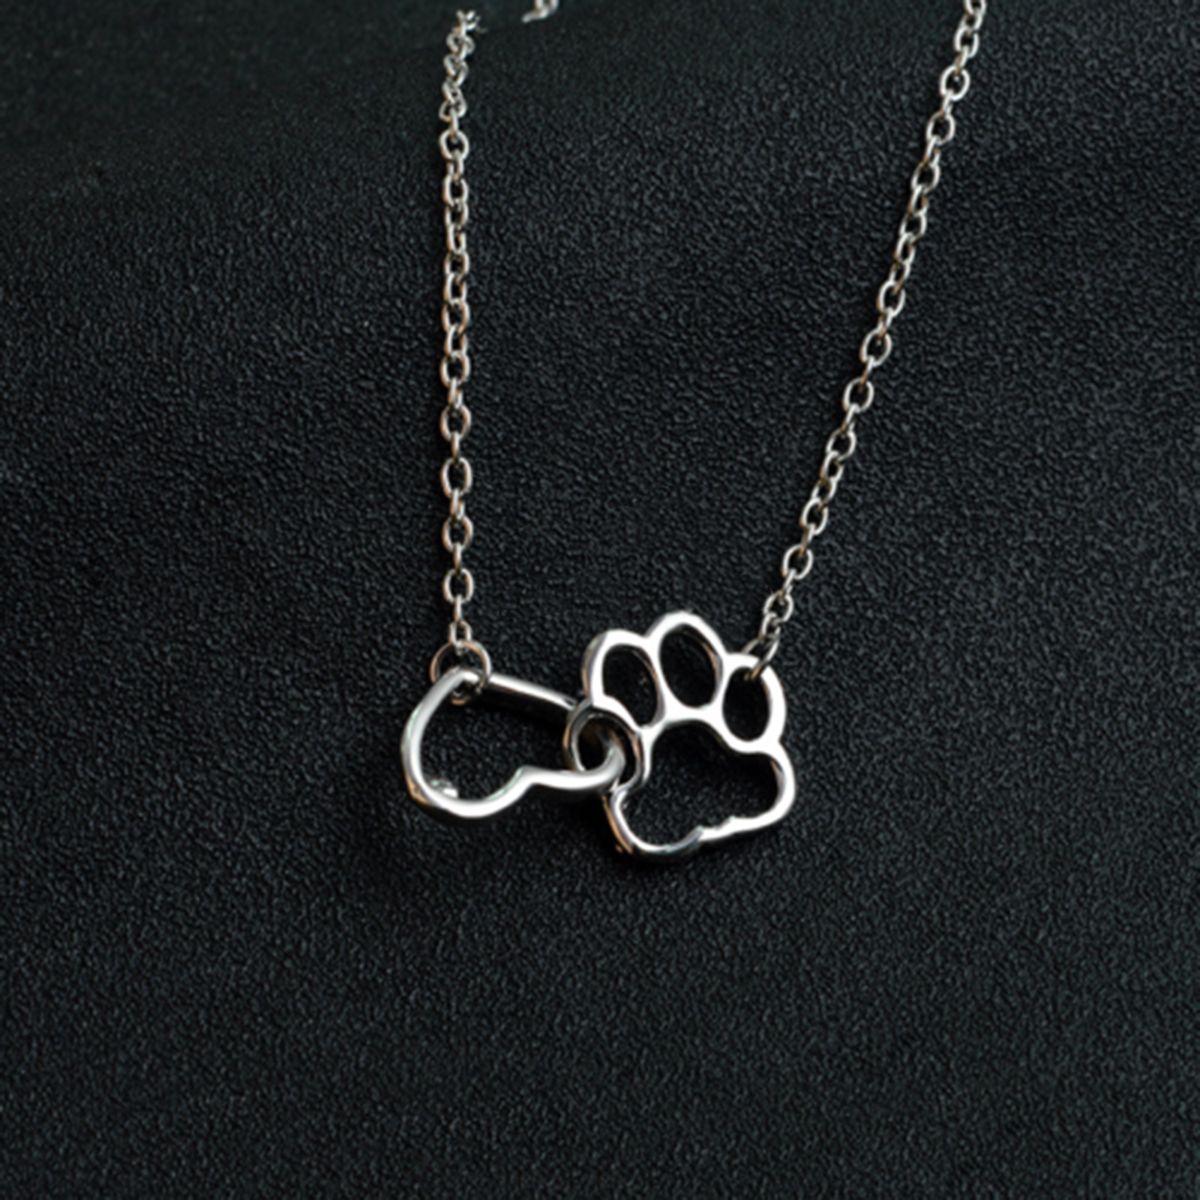 SALE HOLLOW PET PAW FOOTPRINT NECKLACES FOR CAT LOVERS-Cat Jewelry-Free Shipping SALE HOLLOW PET PAW FOOTPRINT NECKLACES FOR CAT LOVERS-Cat Jewelry-Free Shipping HTB1JEUlRpXXXXcWXpXXq6xXFXXXR